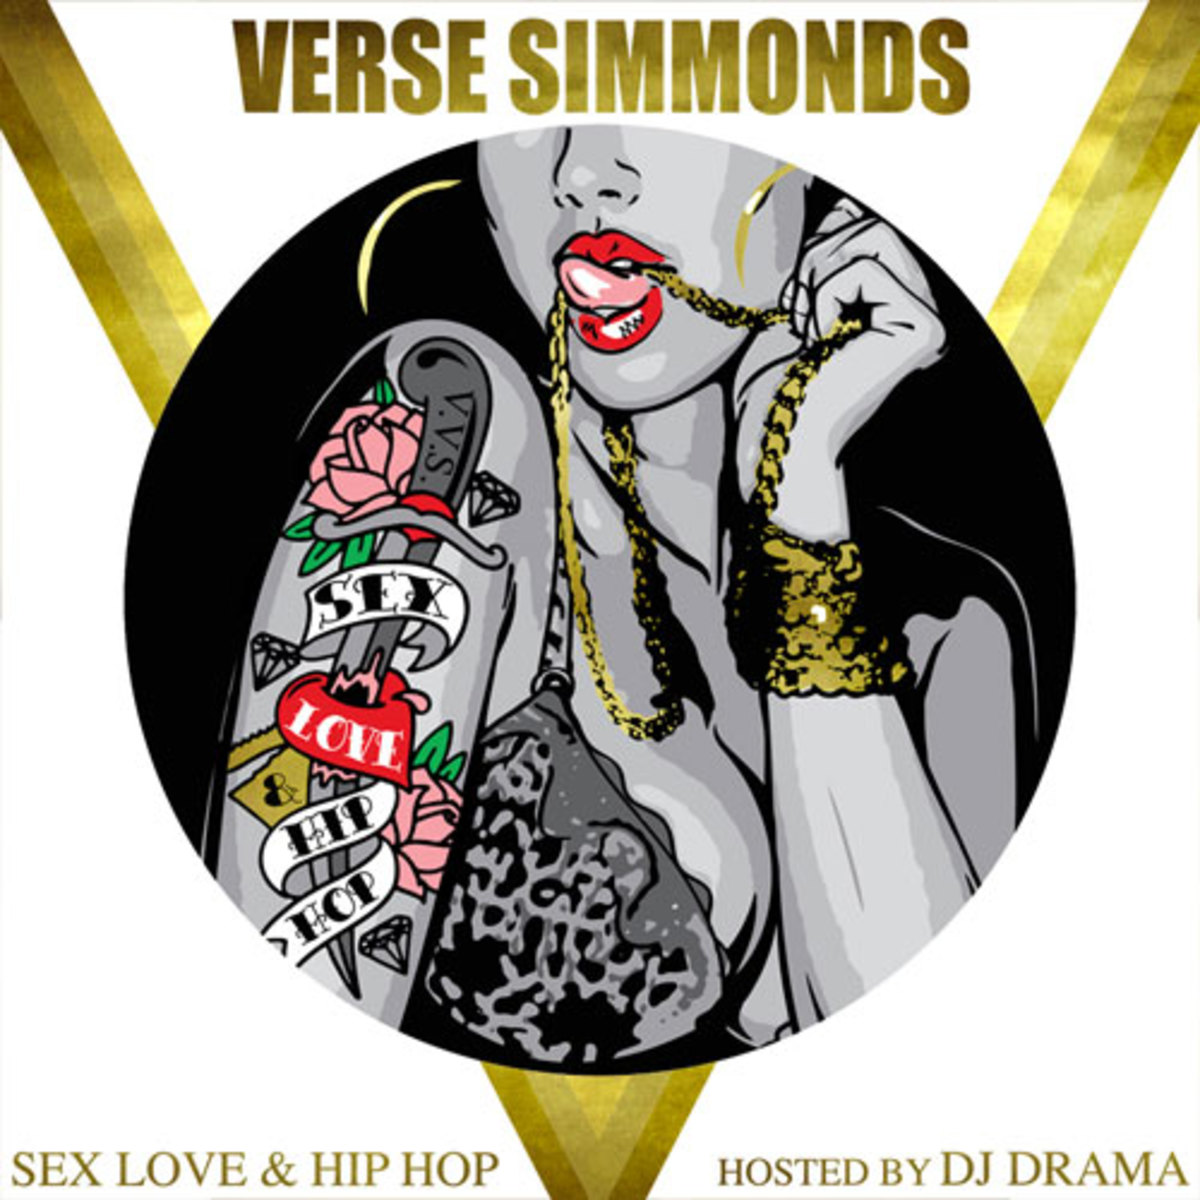 versesimmonds-sexlovehiphop.jpg